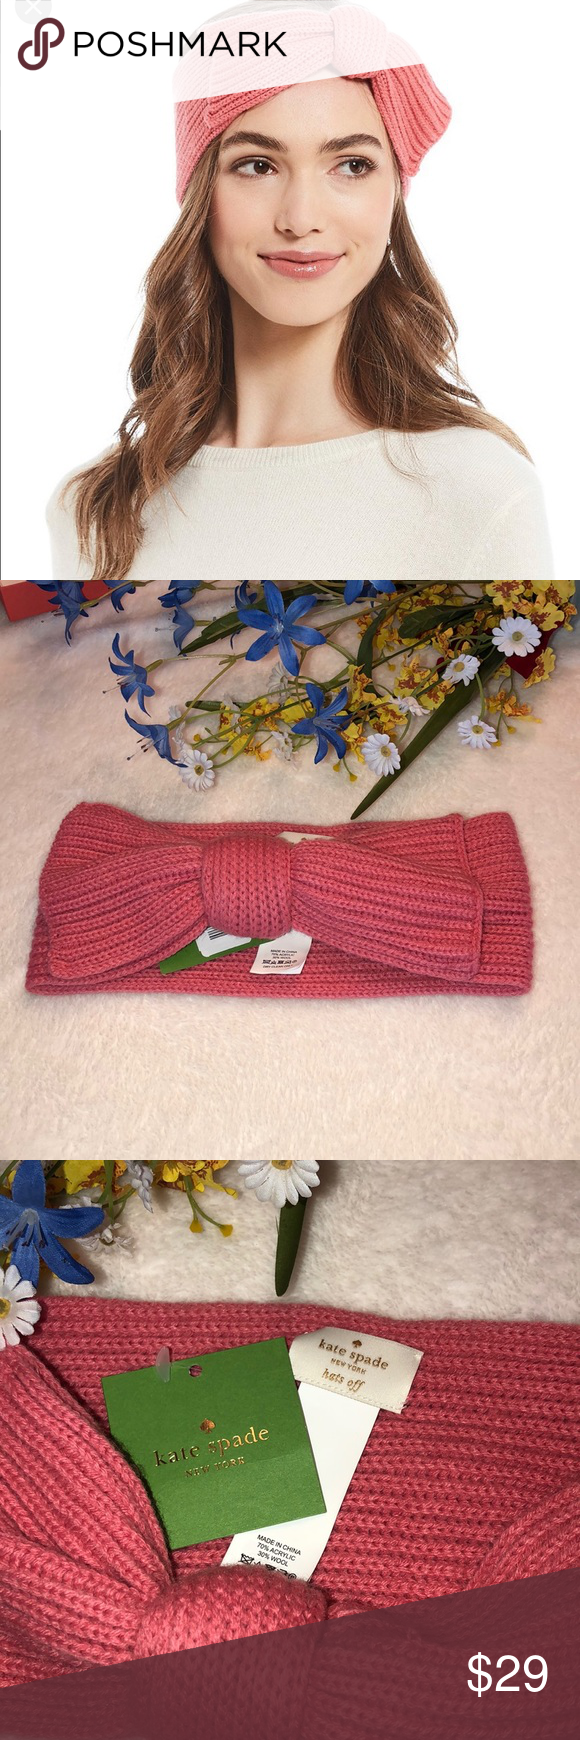 0f3f8ccefc3 Kate Spade ♤ New York Solid Bow Headband 💕Kate Spade ♤ New York Solid Bow  Headband New with tags kate spade Accessories Hats